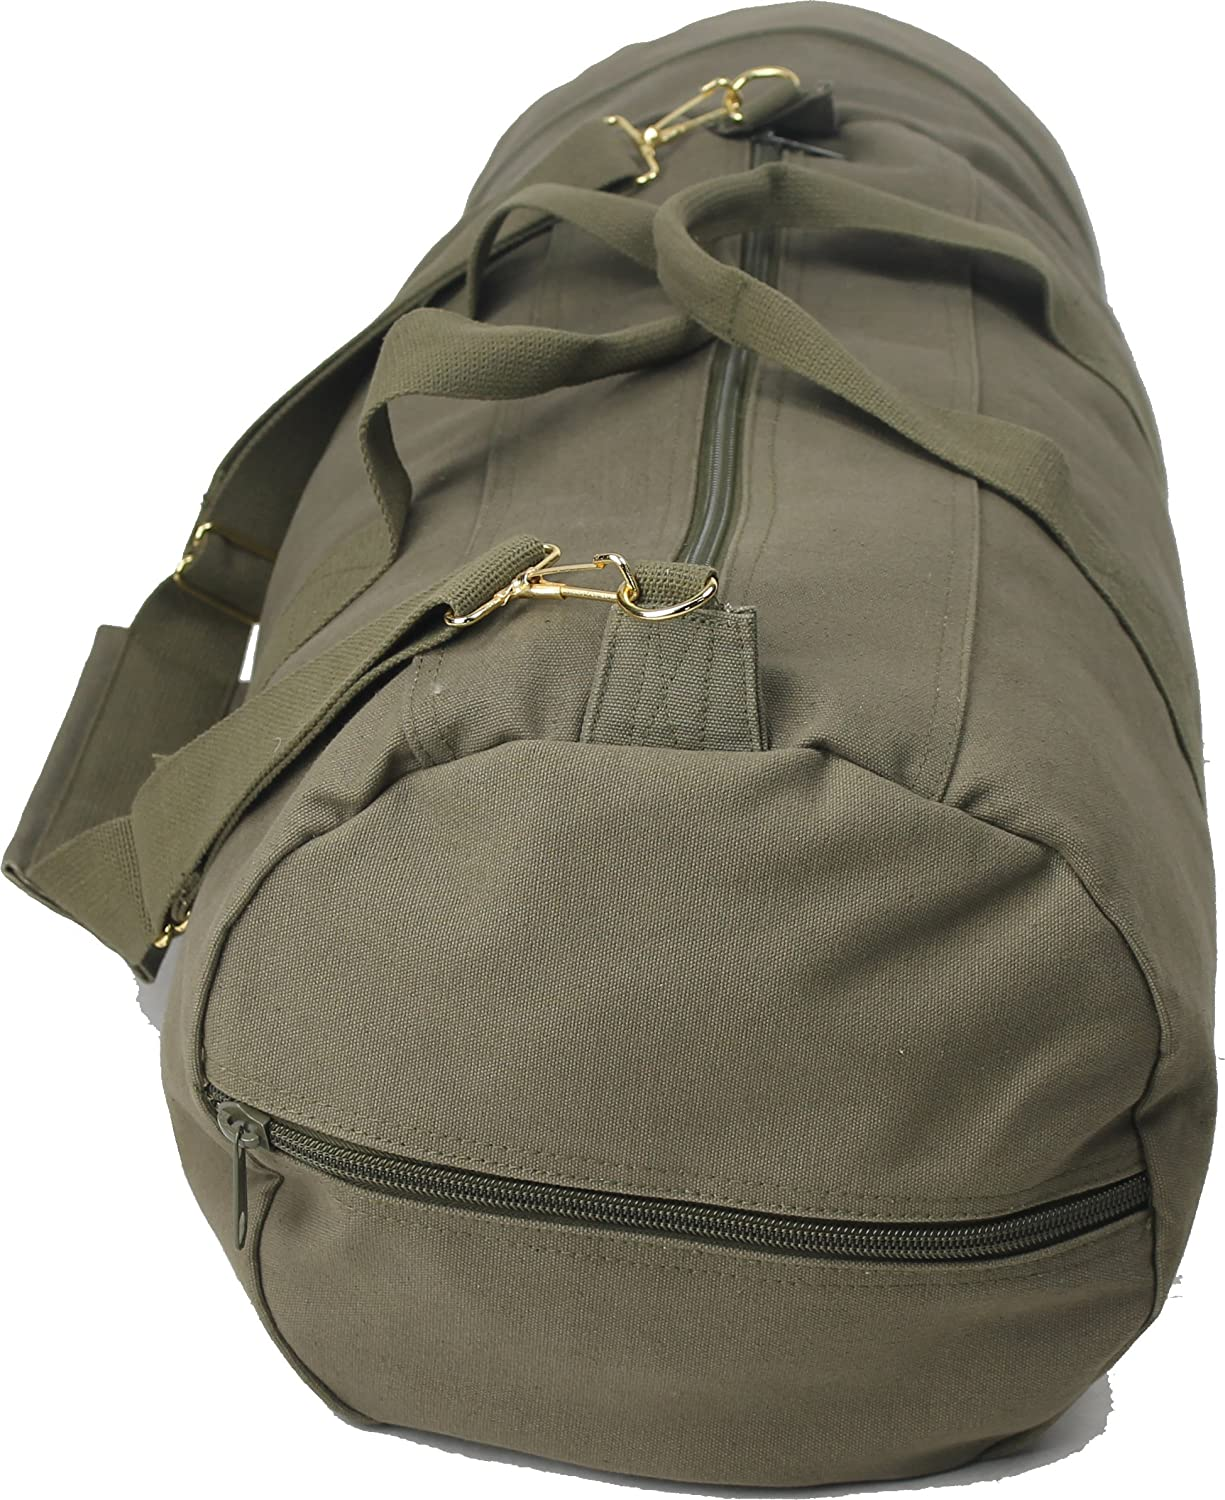 Olive Drab - Military Double-Ender Sports Shoulder Bag (Cotton Canvas) by Army  Universe  Amazon.in  Sports 88cc2bb6c00